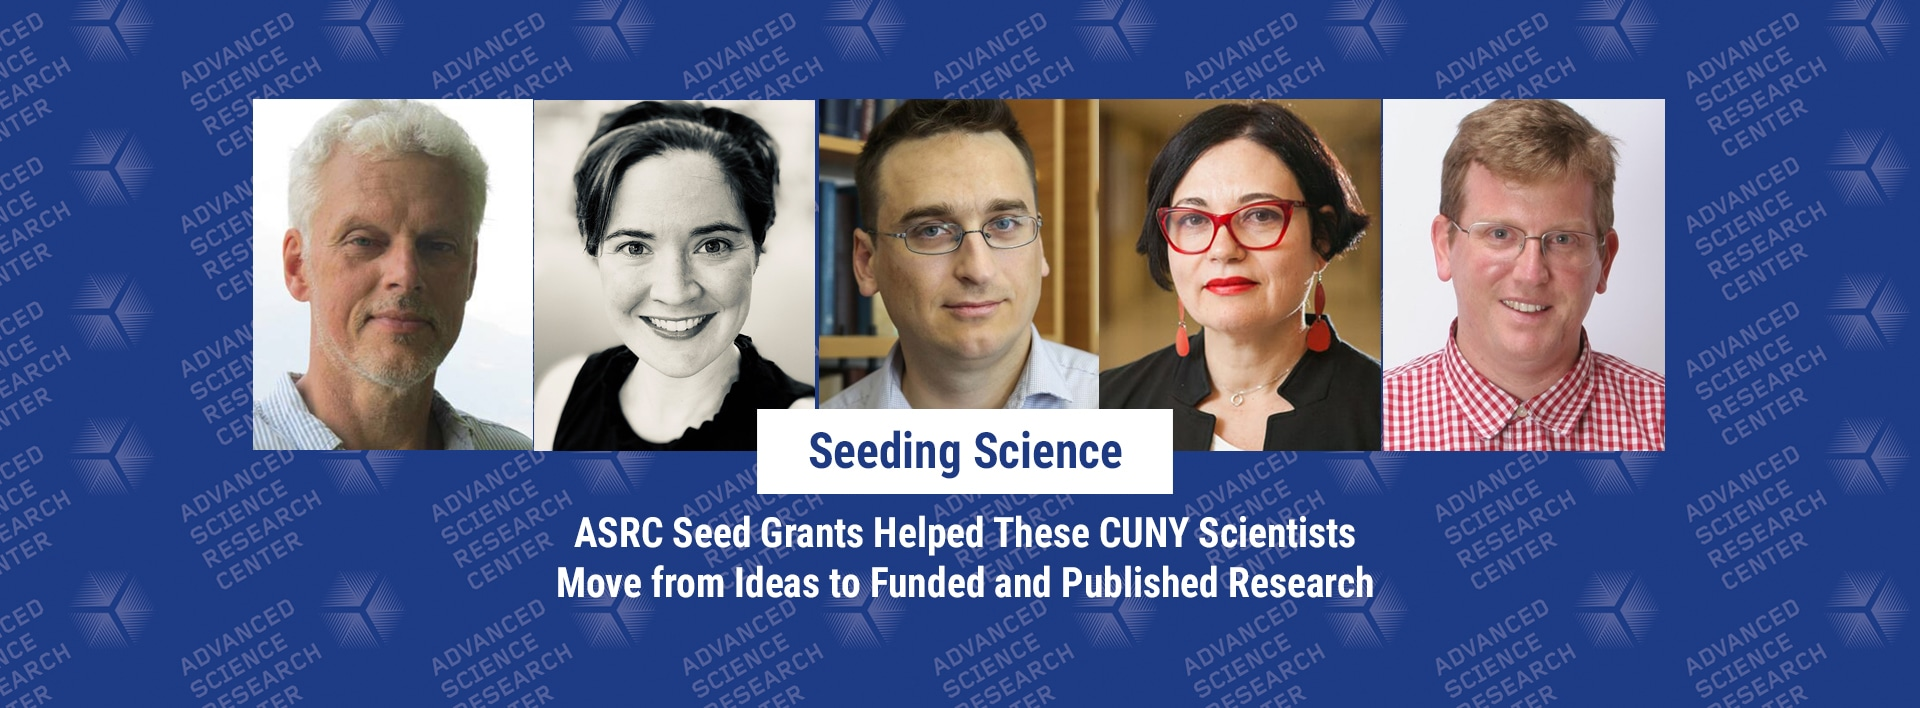 Seeding Science: ASRC Seed Grants Helped These CUNY Scientists Move from Ideas to Funded and Published Research